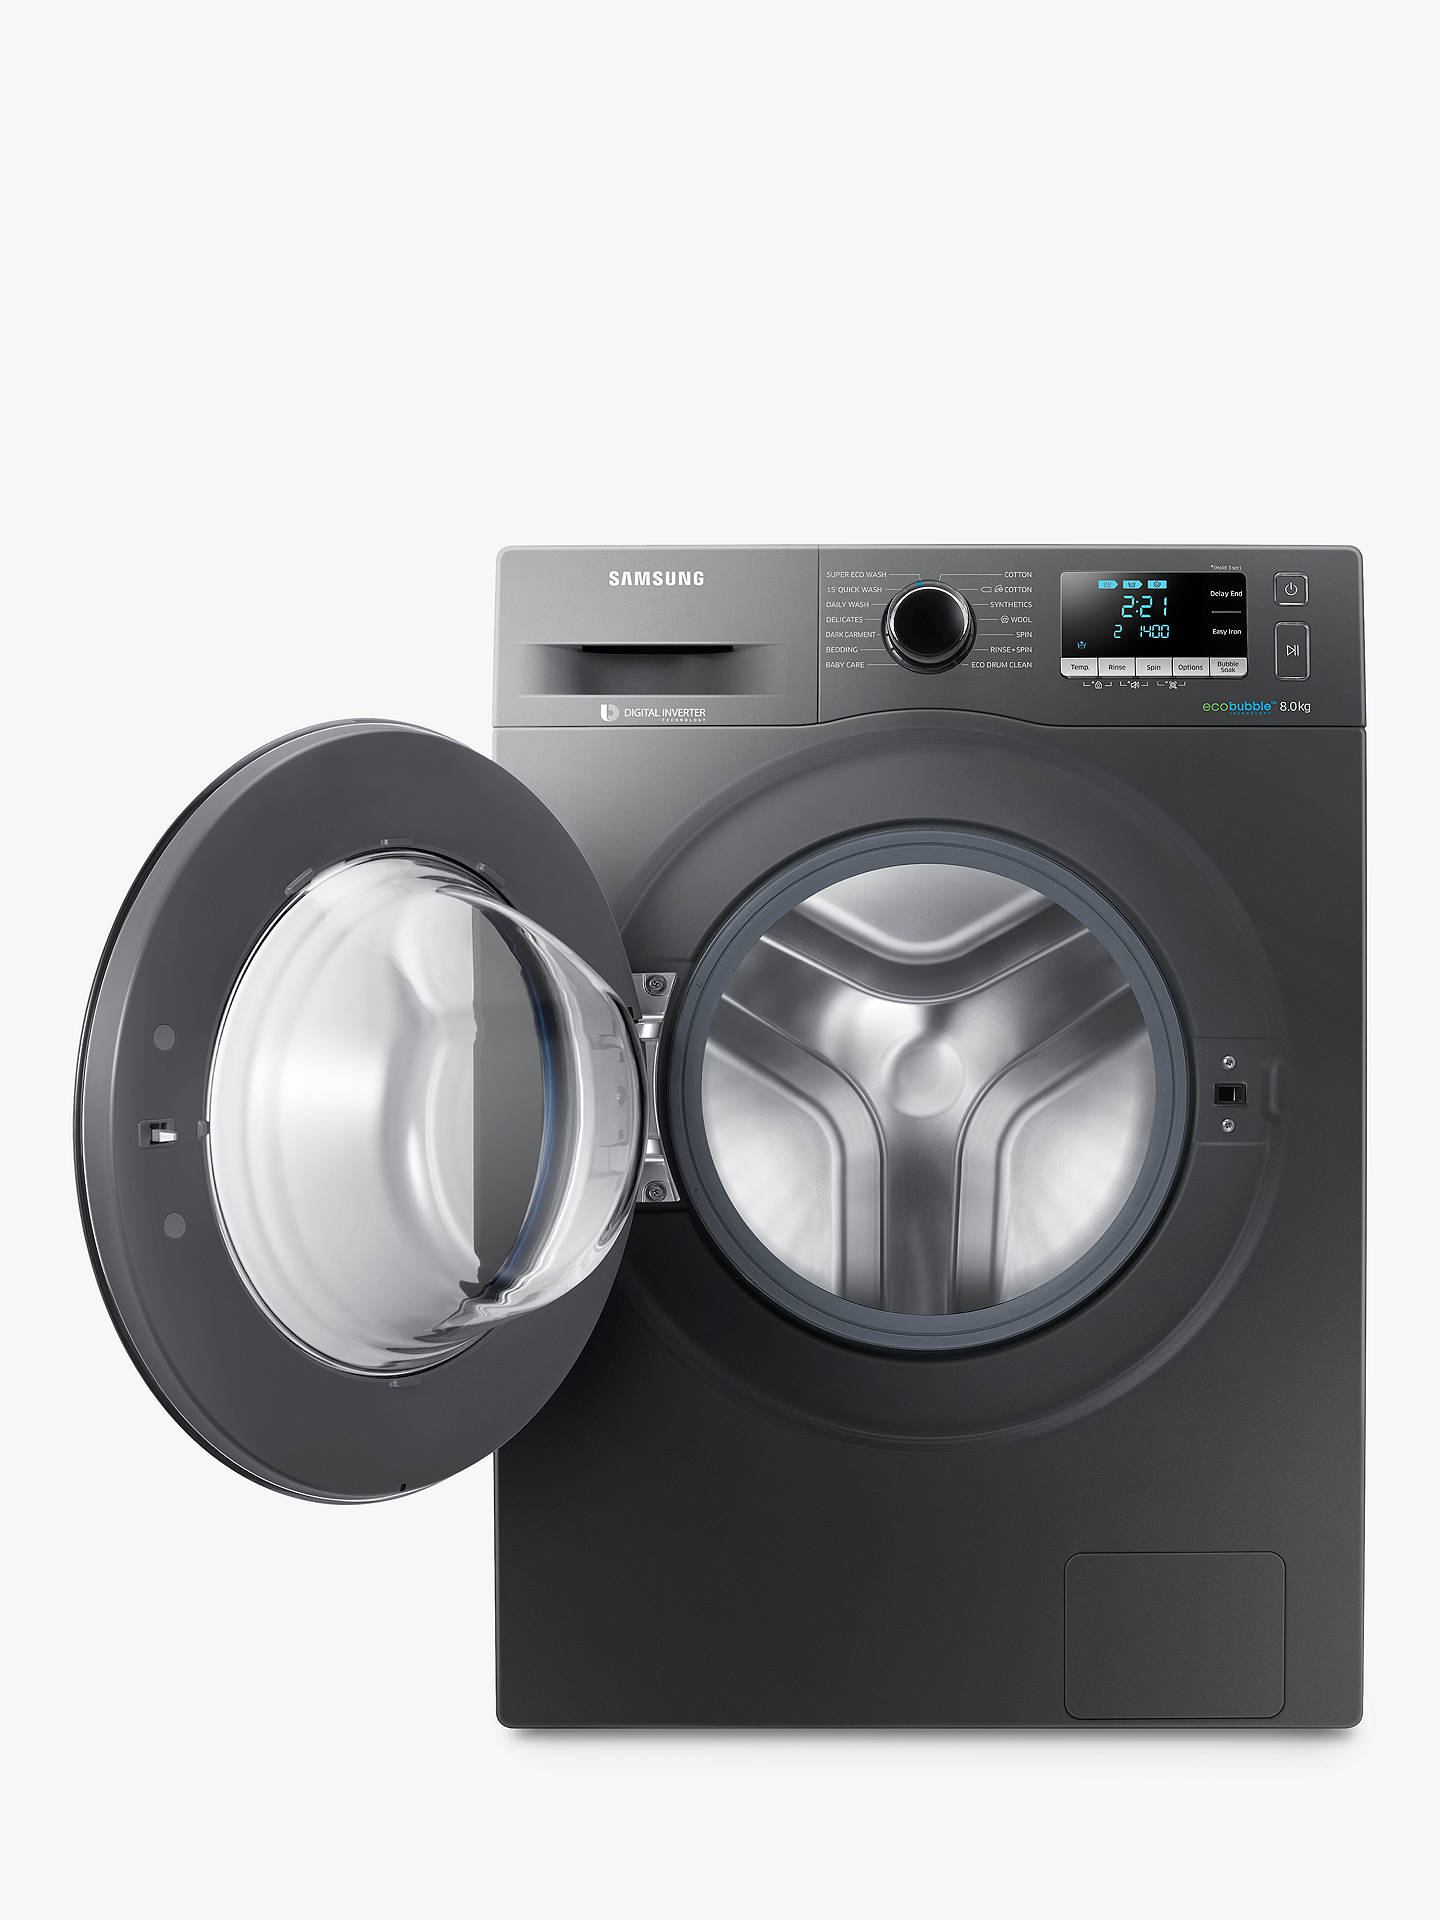 BuySamsung WW80J5456FX/EU ecobubble™  Freestanding Washing Machine, 8kg Load, A+++ Energy Rating, 1400rpm Spin, Graphite Online at johnlewis.com